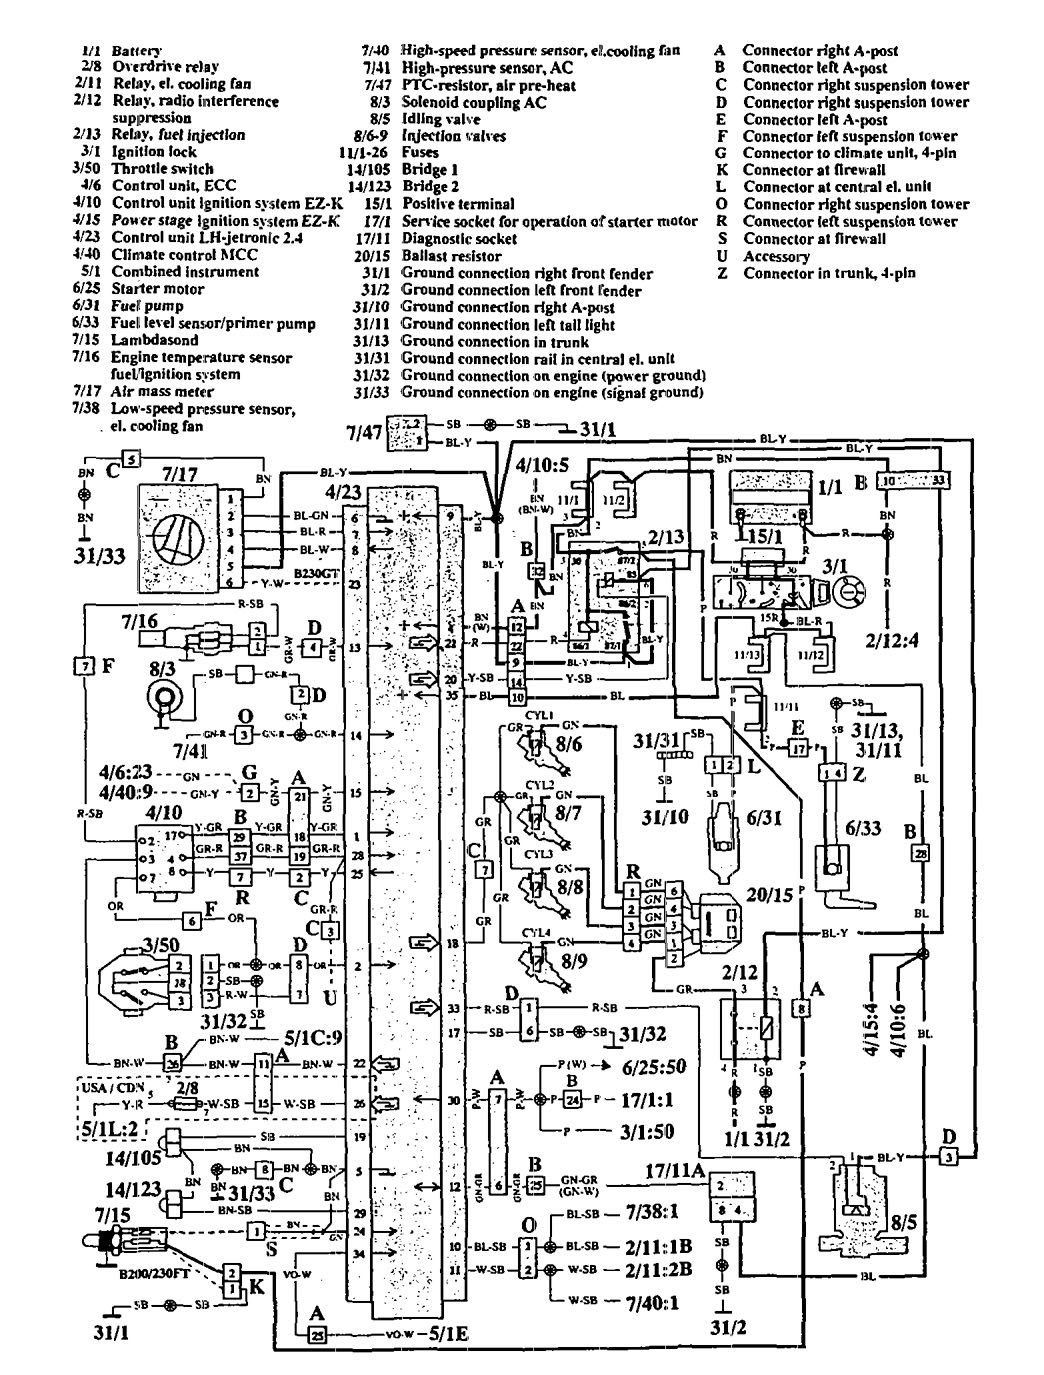 volvo 940 wiring diagram fuel controls v2 2 1992 volvo 940 (1992) wiring diagrams fuel controls carknowledge volvo 940 wiring diagram at panicattacktreatment.co